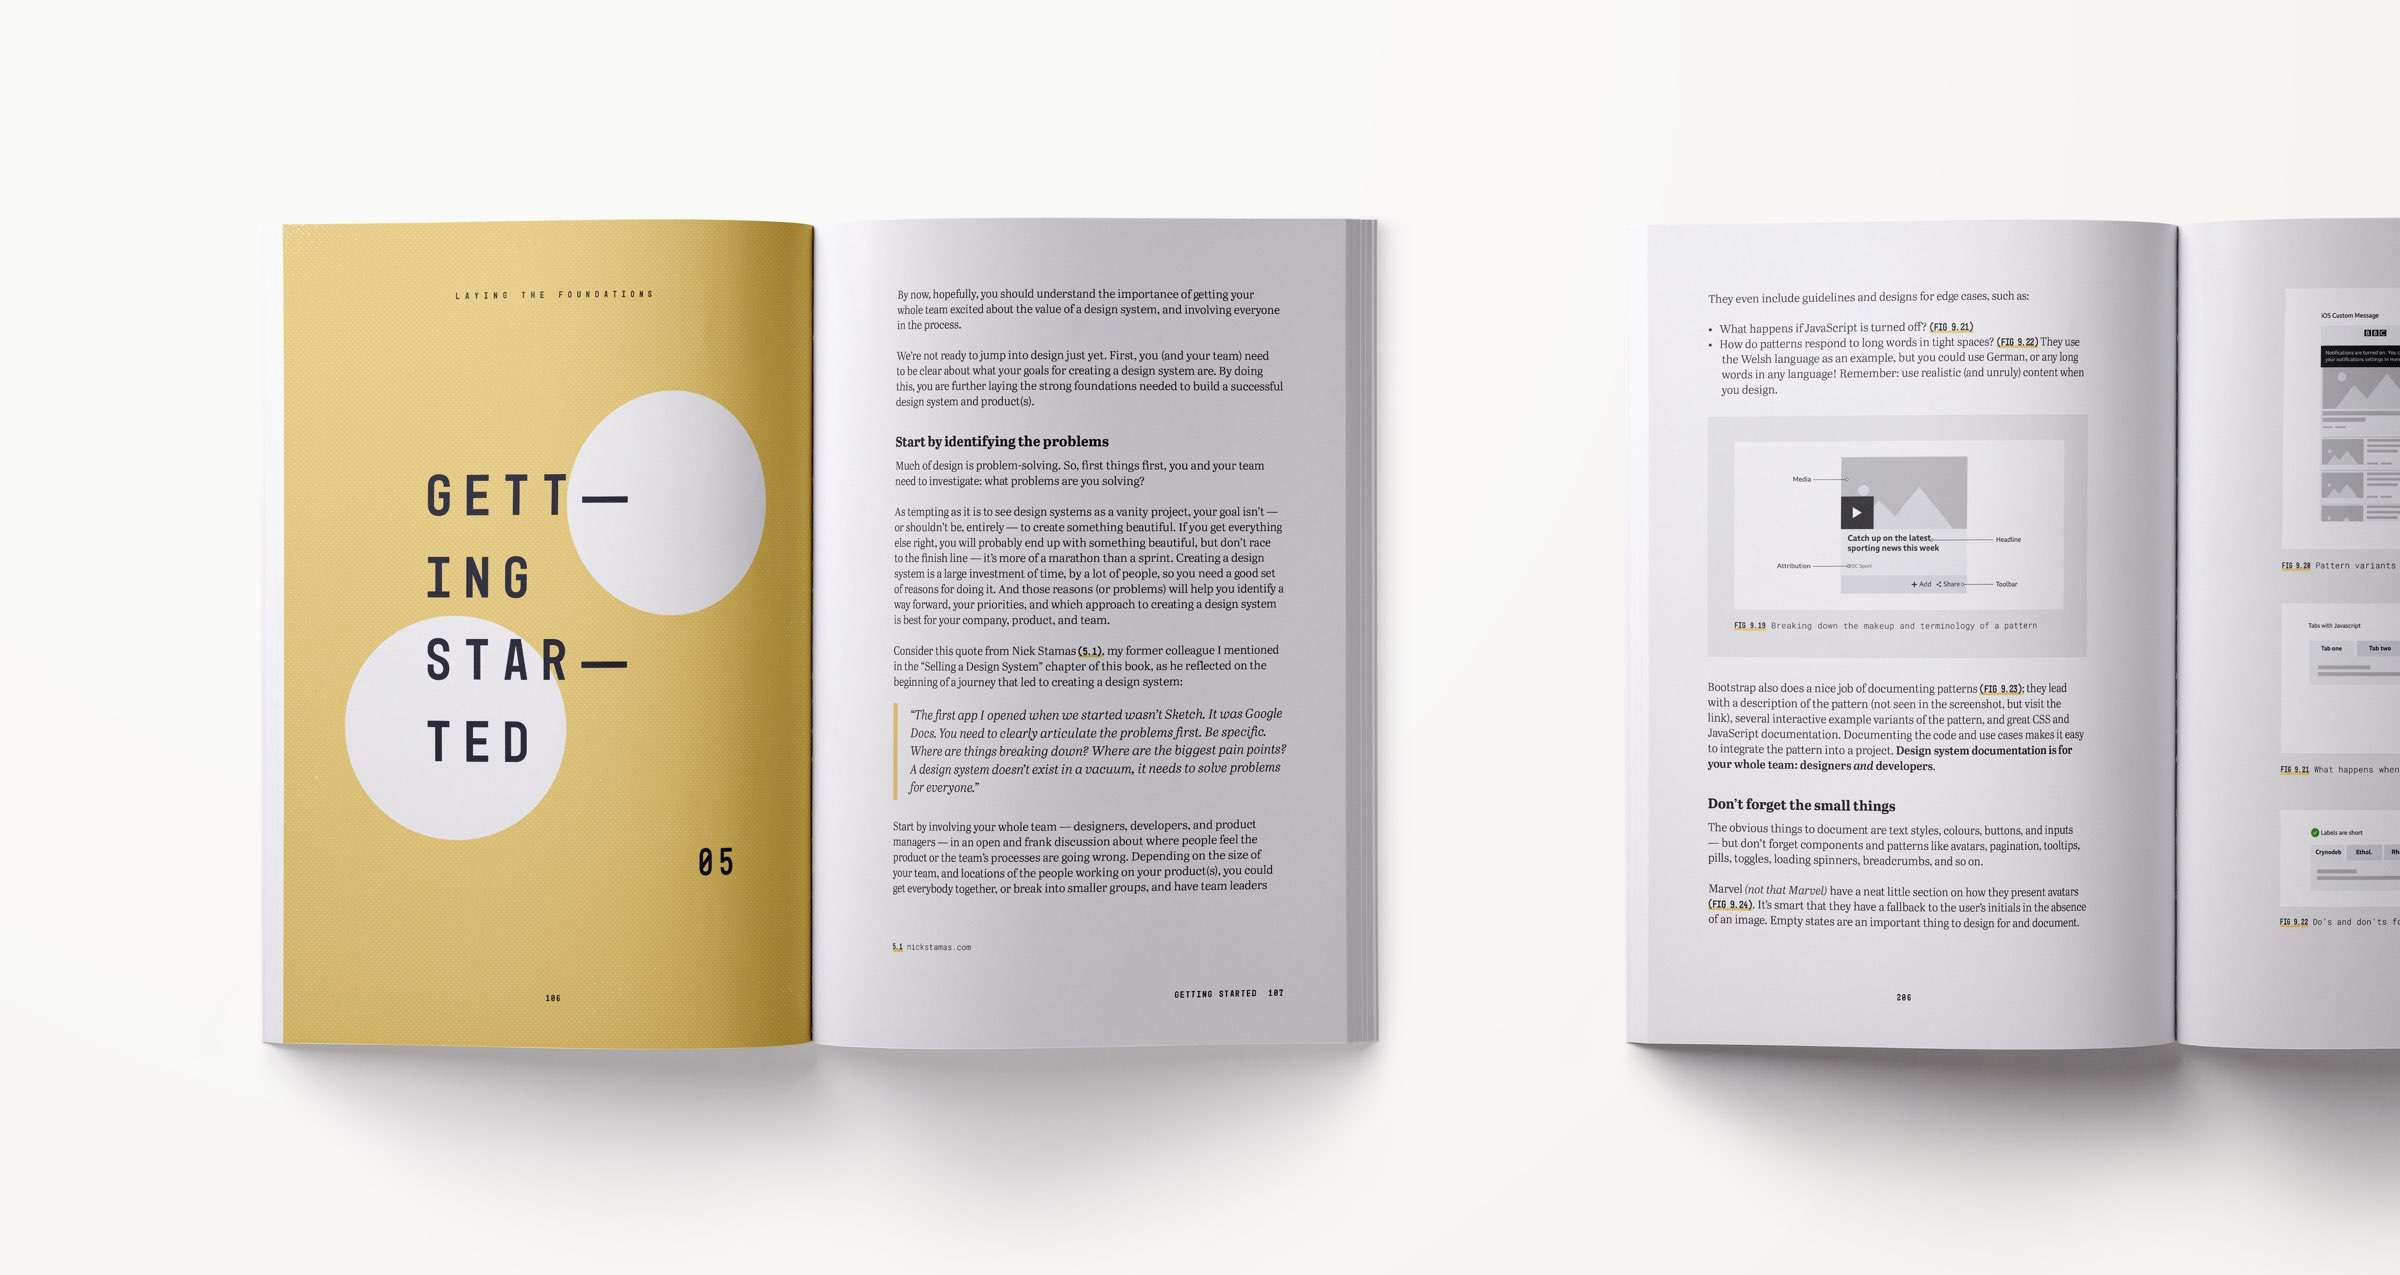 A design systems book spread showing content related to getting started with design systems